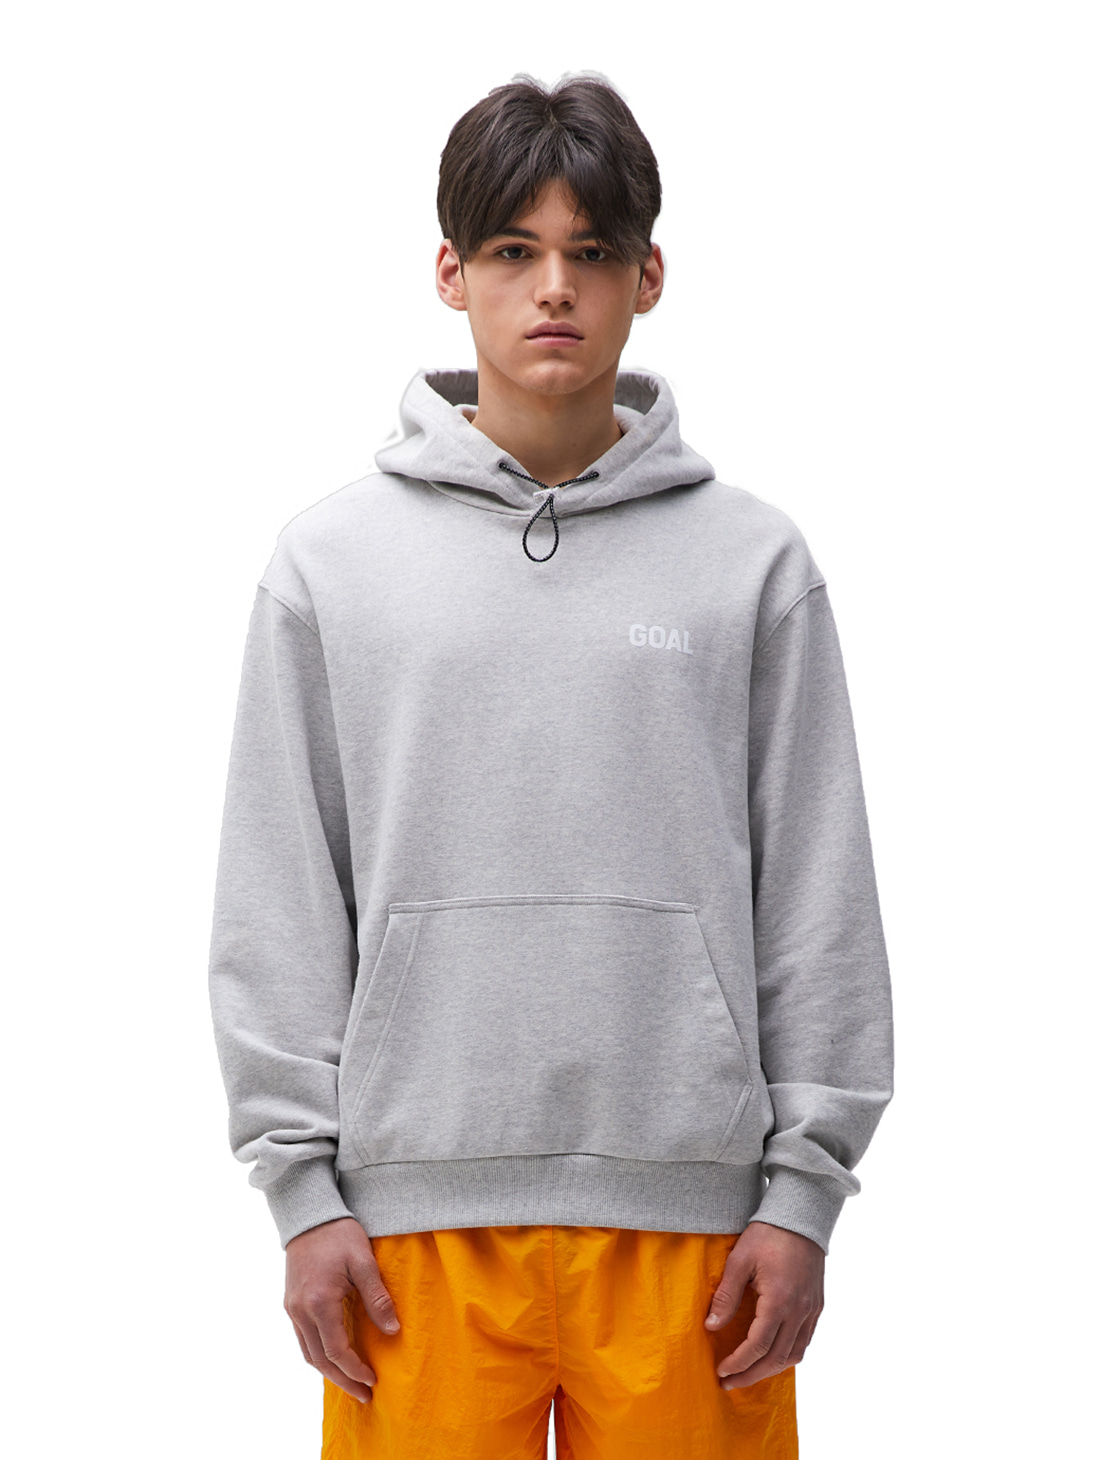 GOALSTUDIO FLOCKING HOODIE - GREY